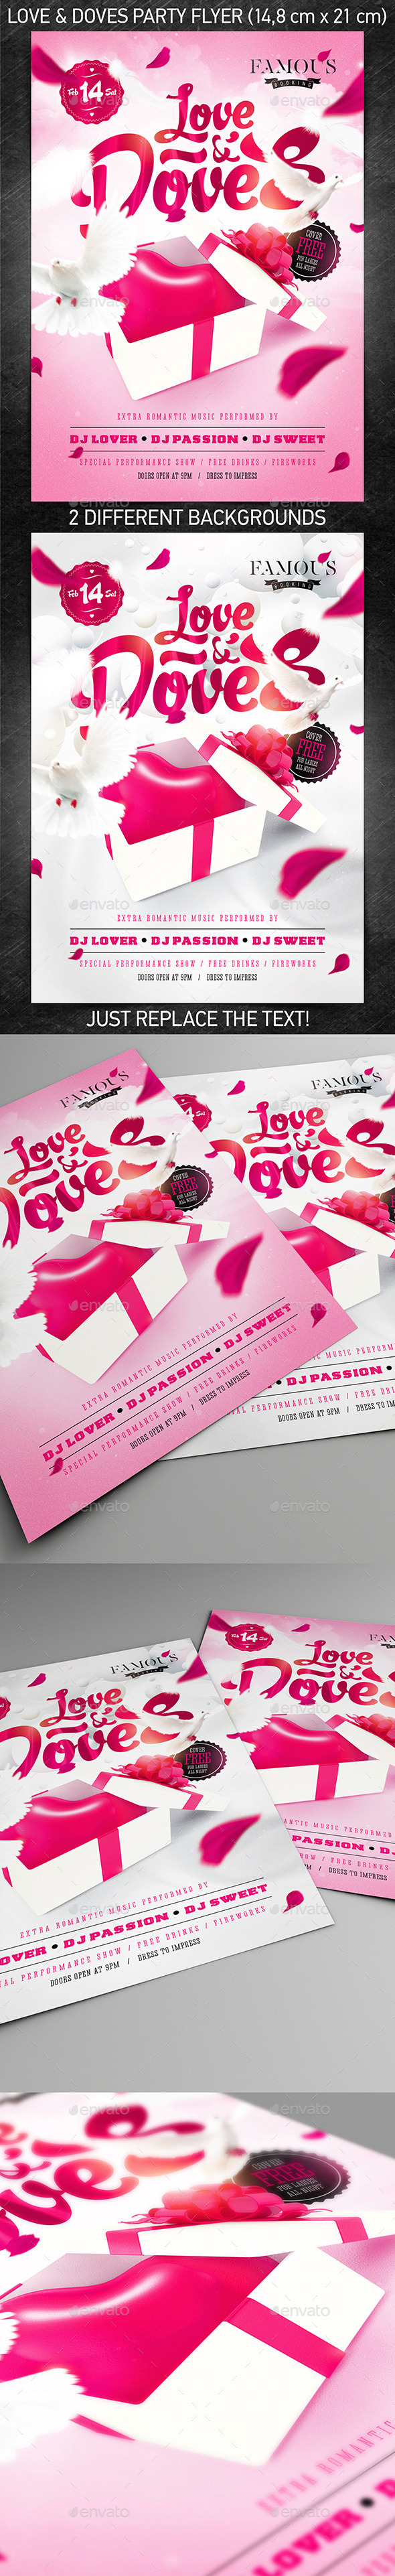 GraphicRiver Love & Doves Party Flyer 10142916